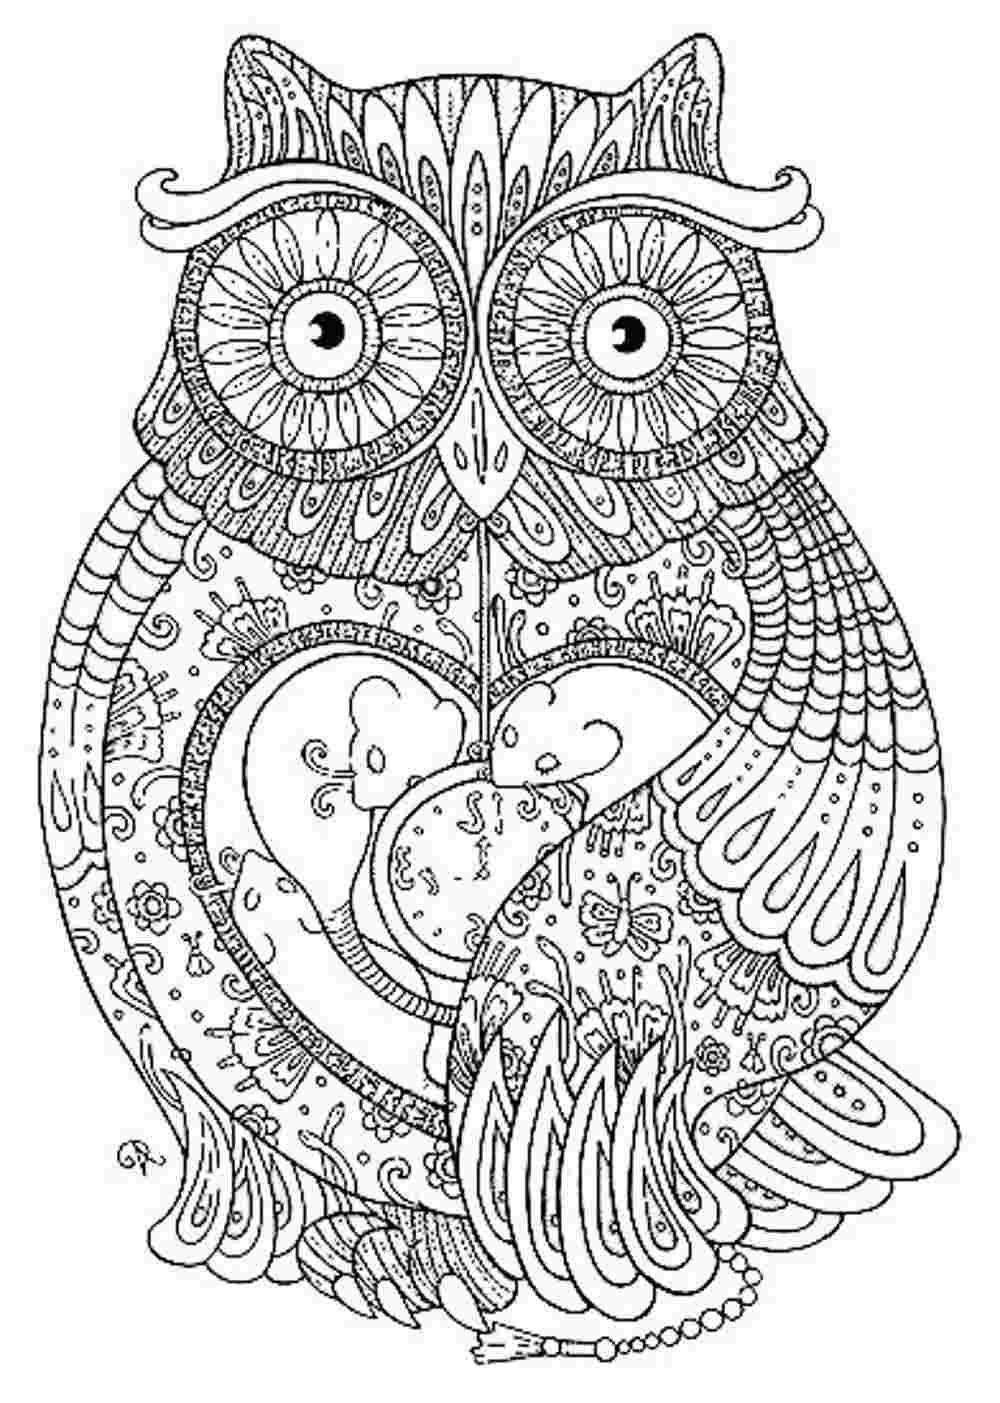 Animal mandala coloring pages to download and print for ...   free printable animal mandala coloring pages for adults